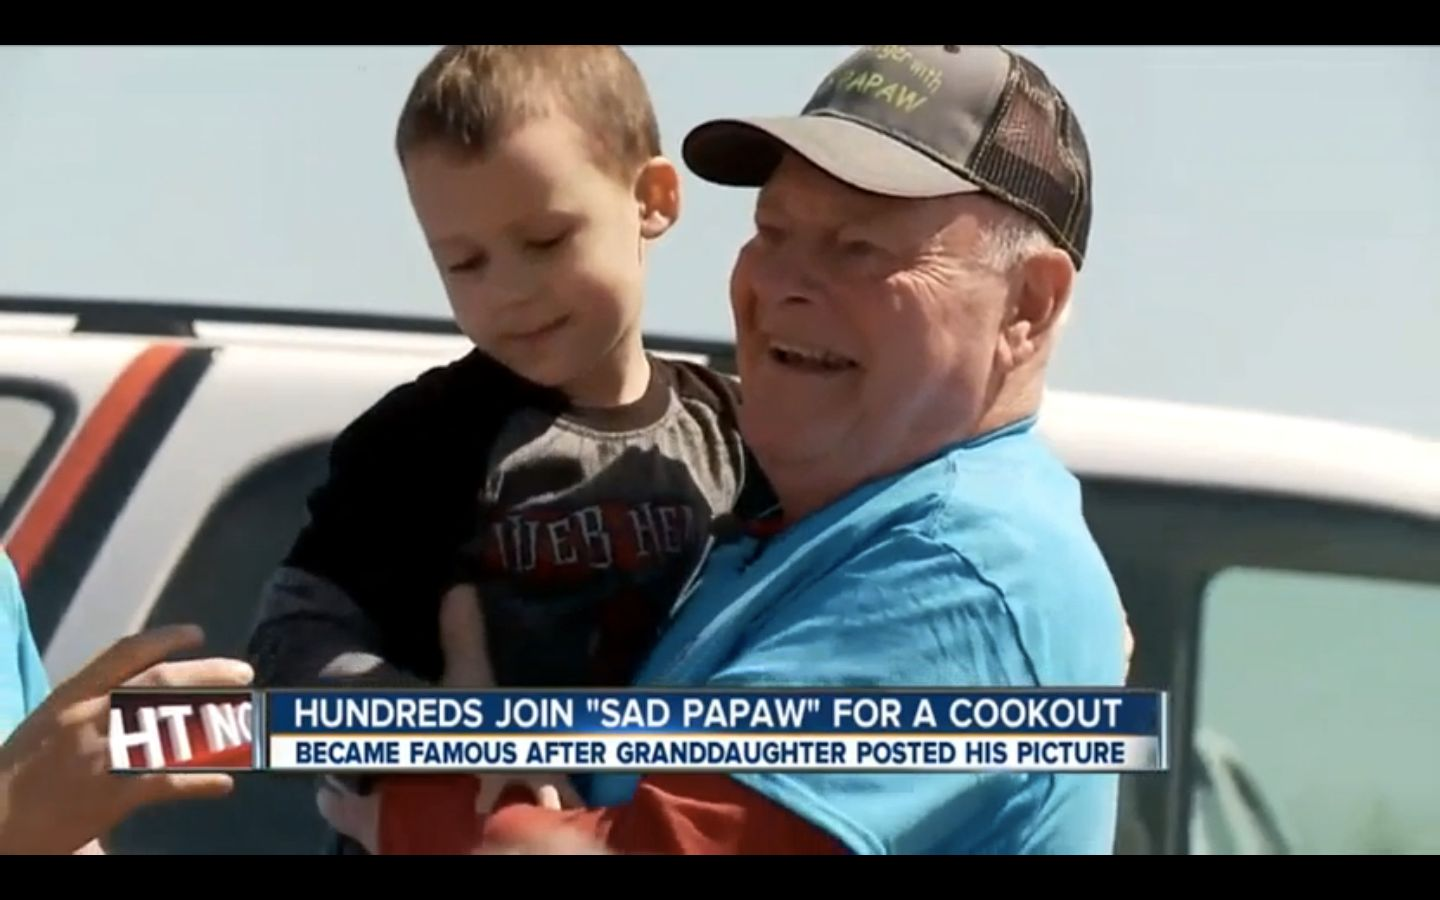 """Kenneth Harmon, more famously known as """"Sad Papaw,"""" is seen posing for photos during a cookout on Saturday."""